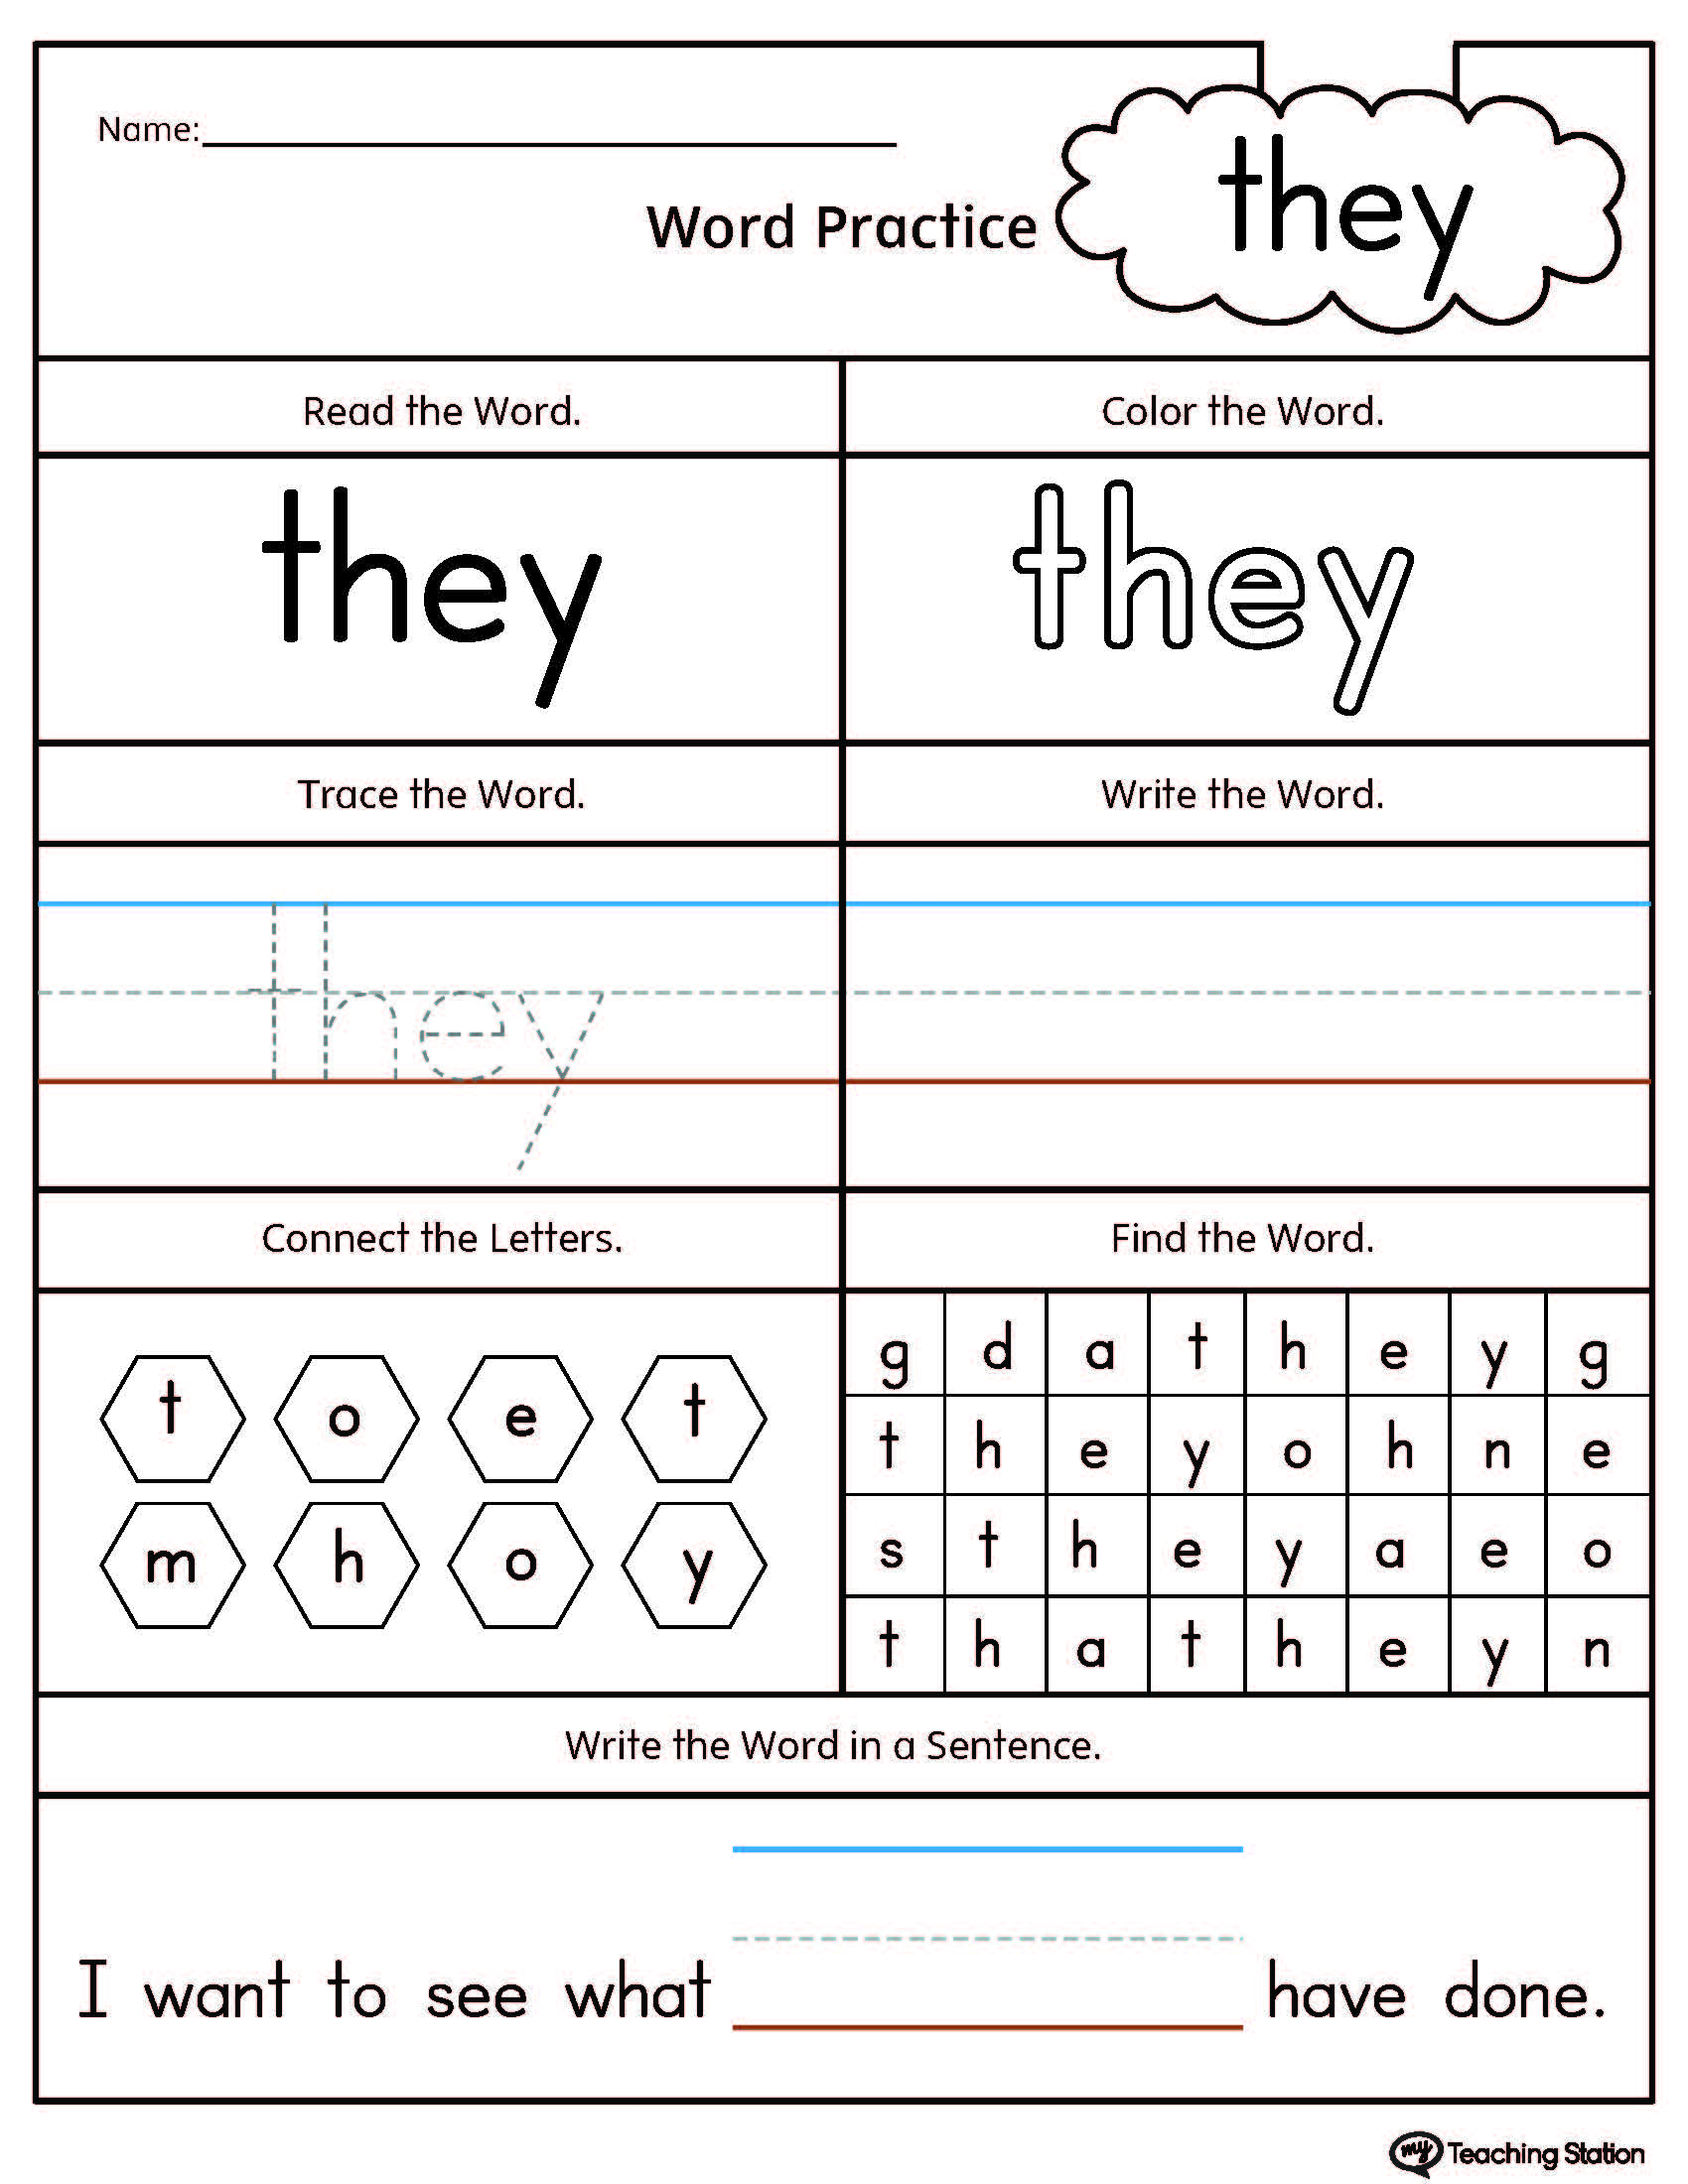 High frequency word they printable worksheet myteachingstation high frequency word they printable worksheet ibookread ePUb